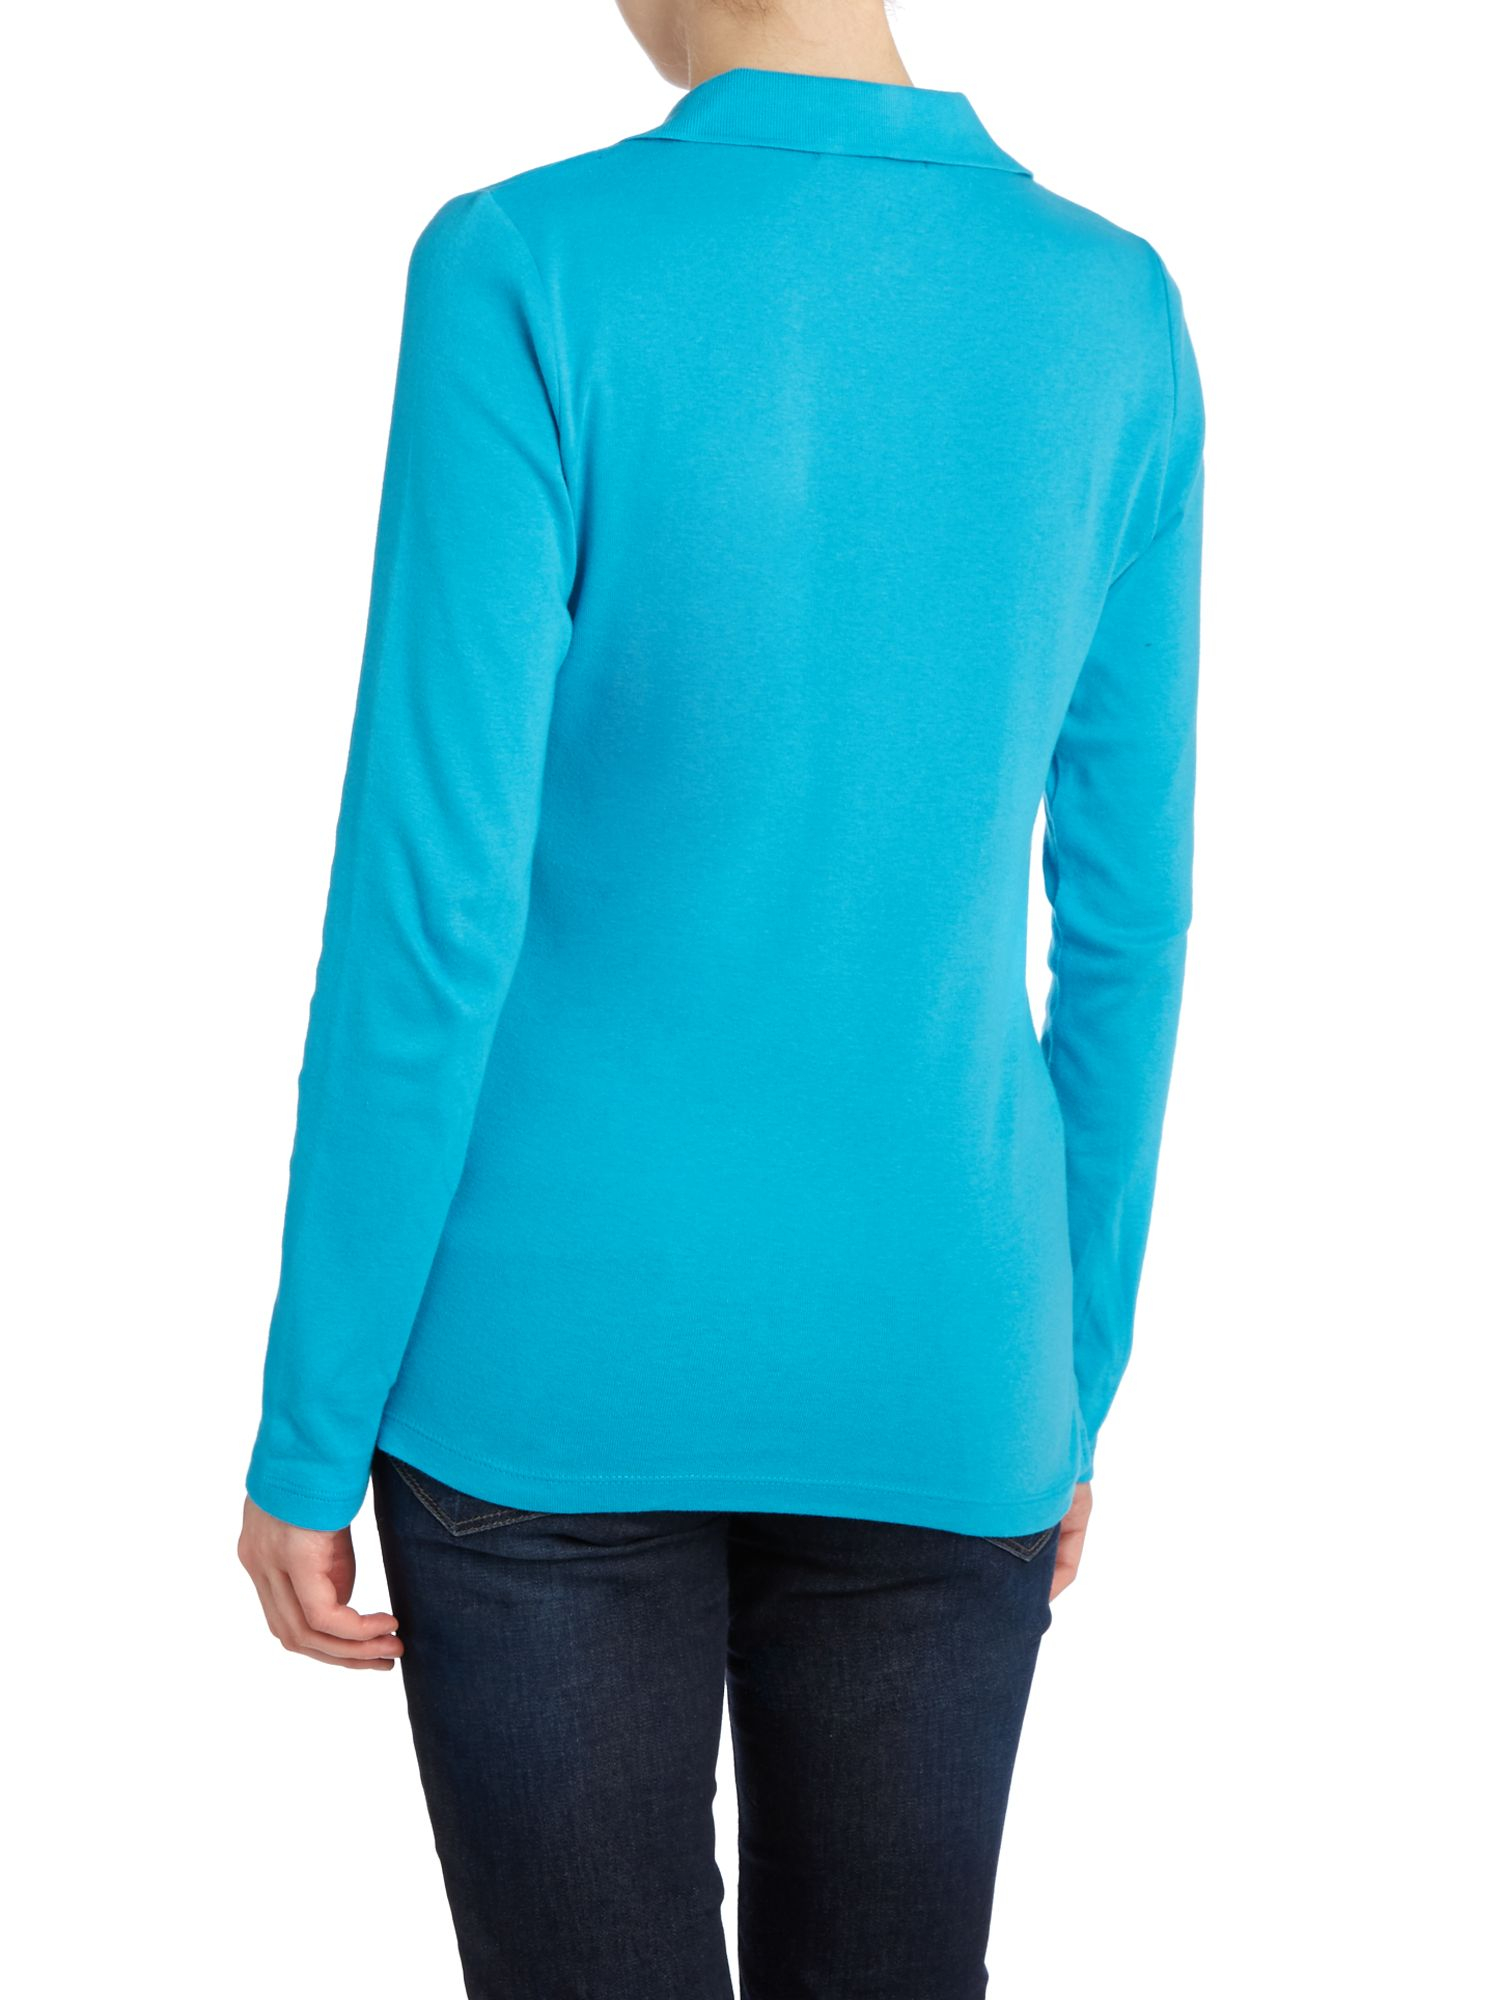 lauren by ralph lauren long sleeve polo with gold crest in blue turquoise lyst. Black Bedroom Furniture Sets. Home Design Ideas